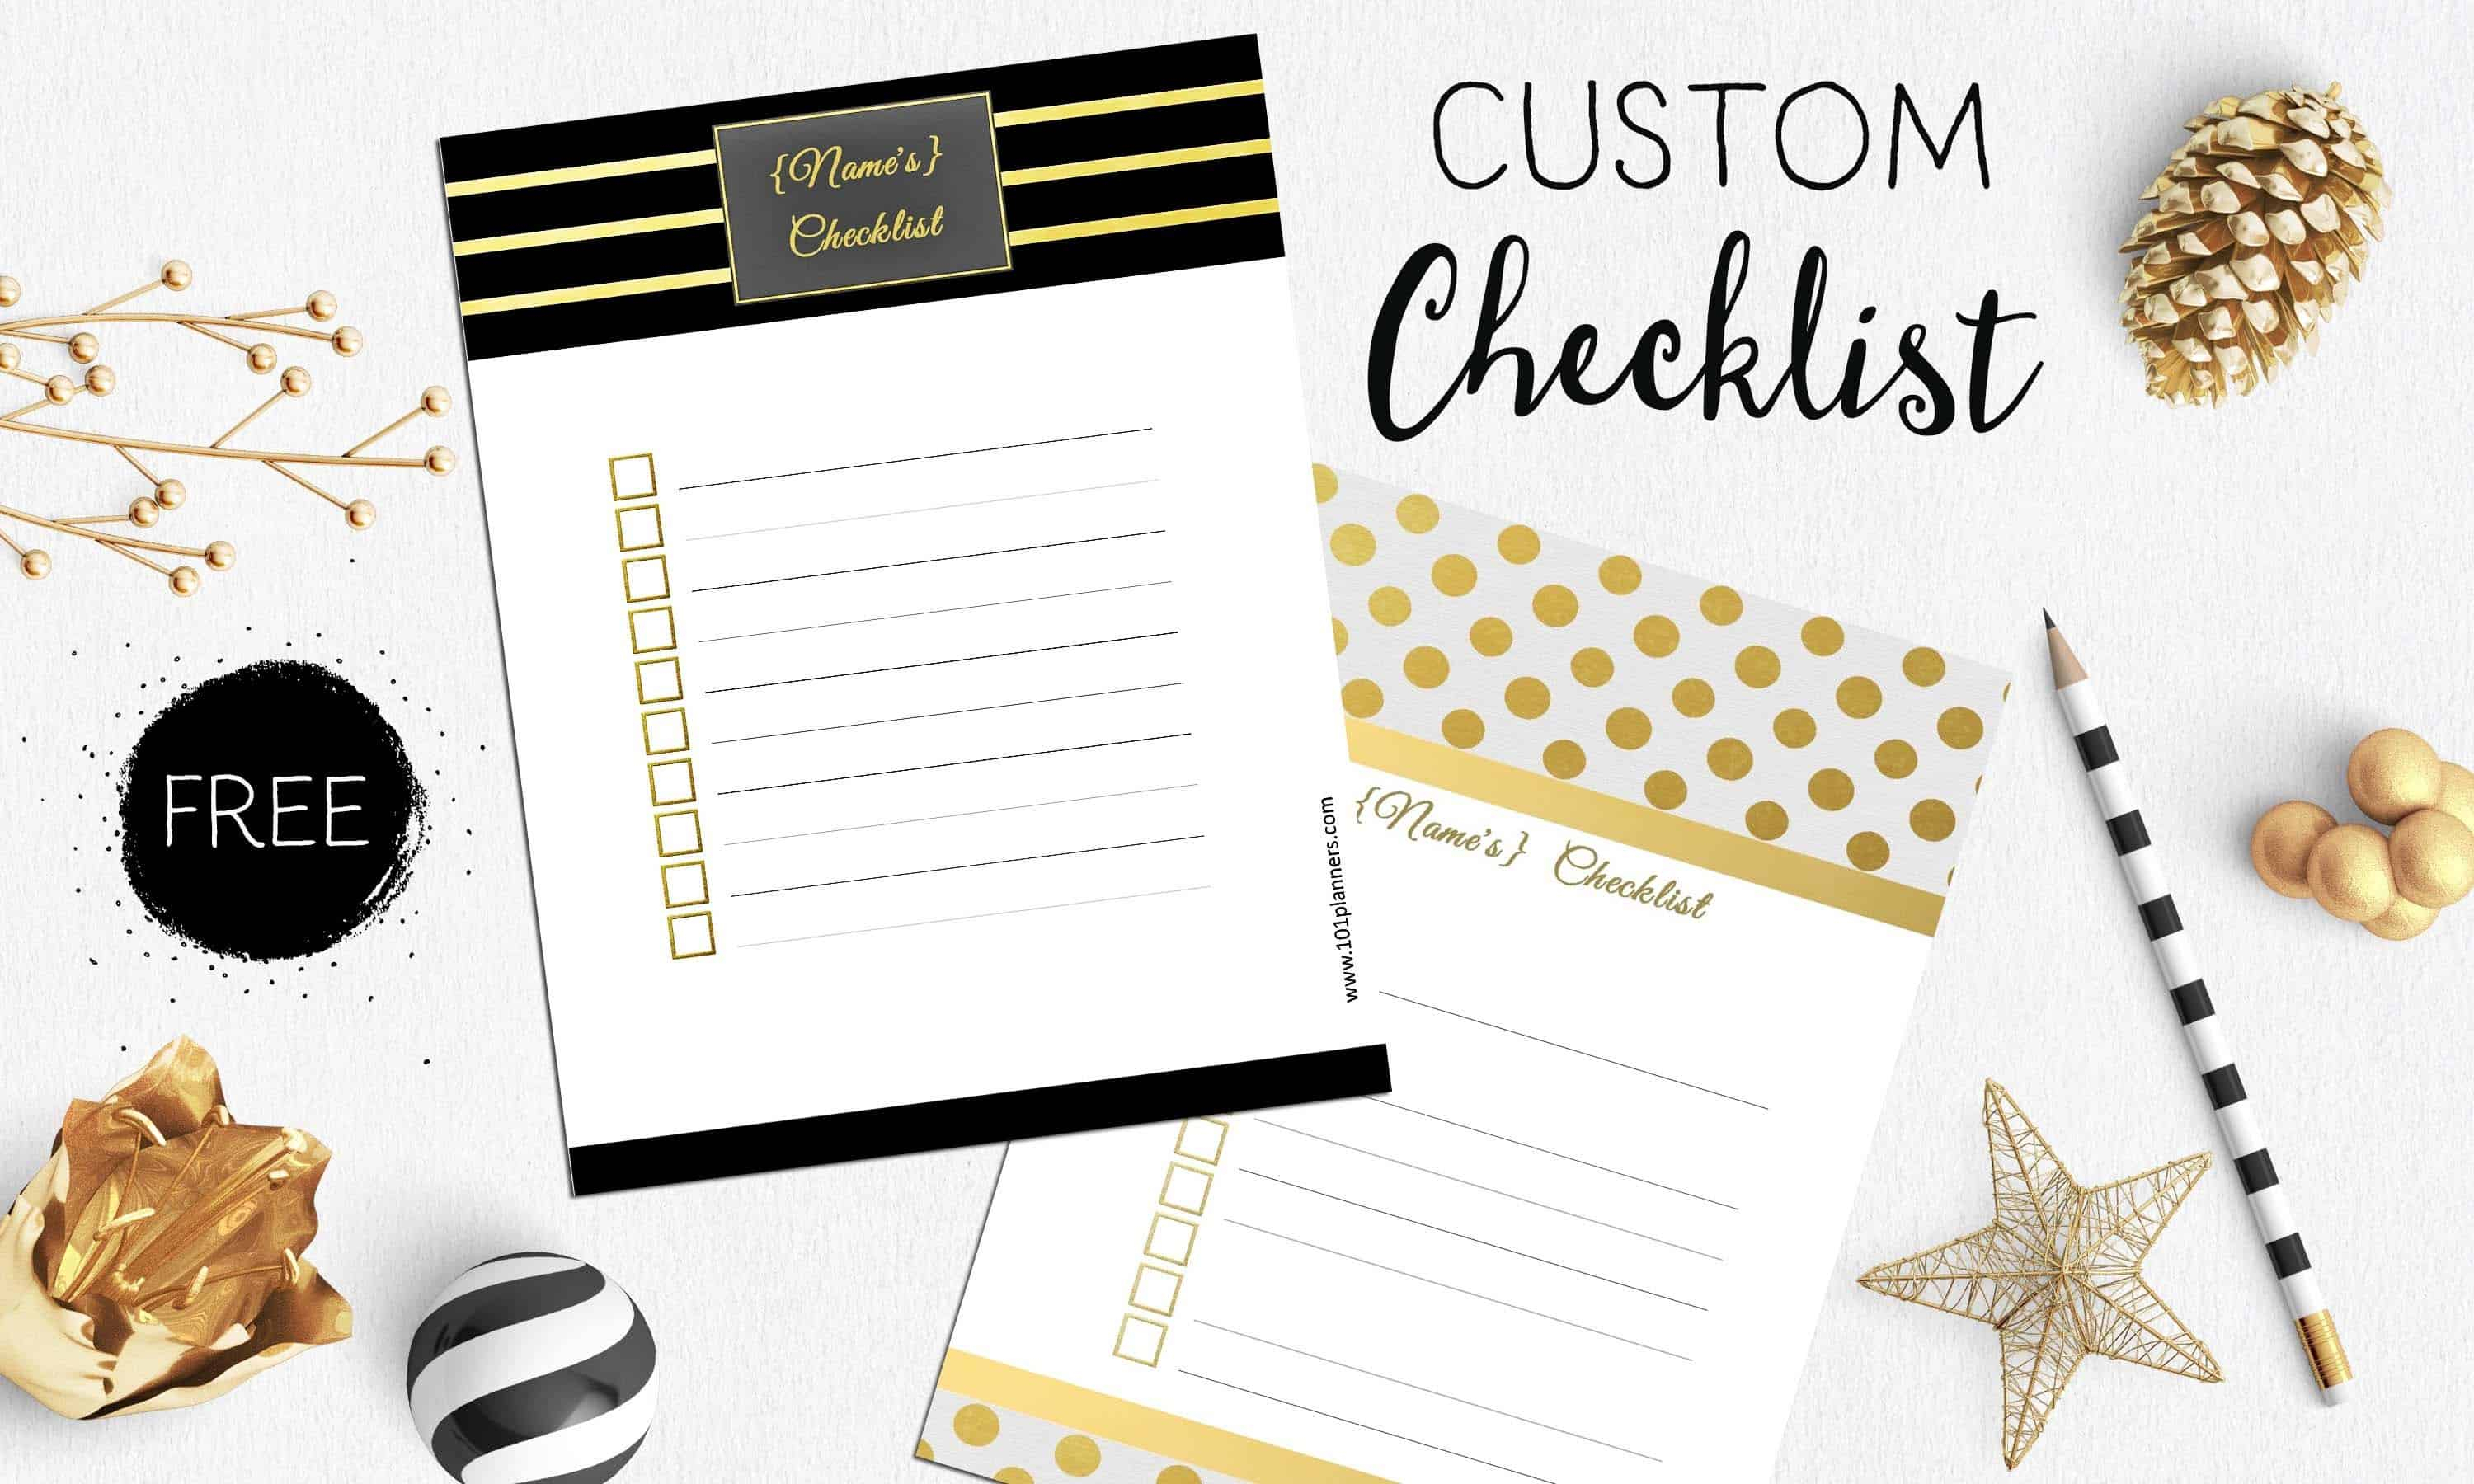 Free Checklist Template | Use The Checklist Maker Online Or with regard to Printable Blank Checklist